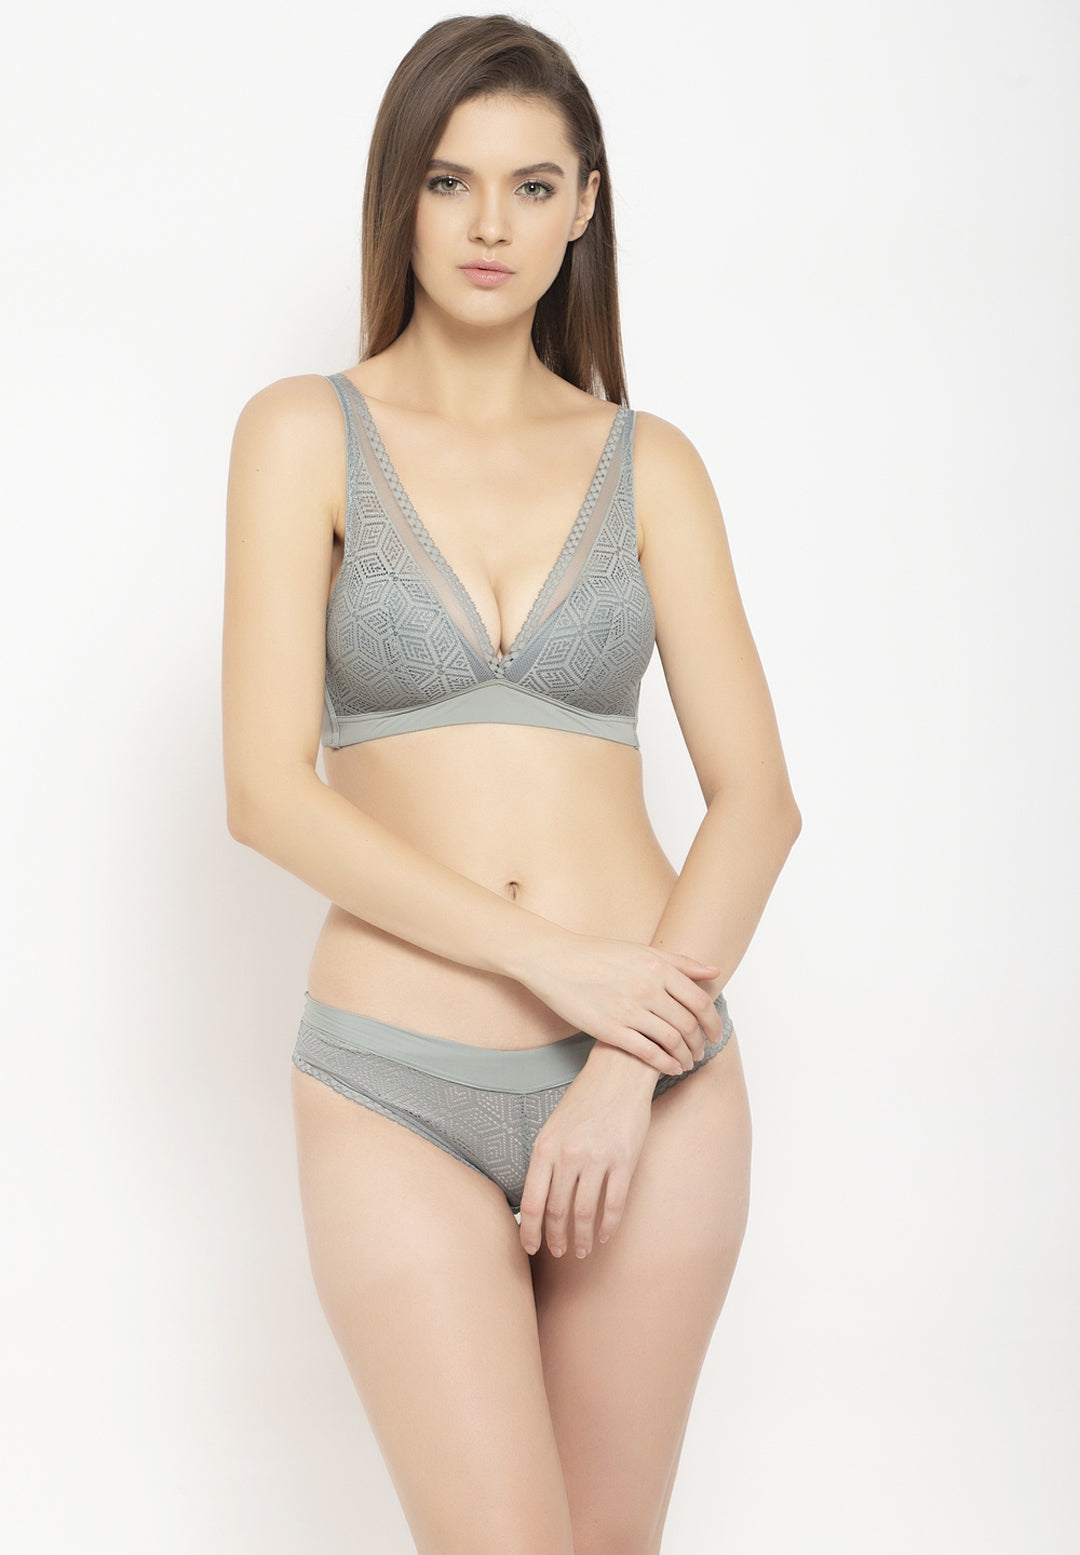 Avant-Garde Paris Padded Non-wired Lace Bra Set